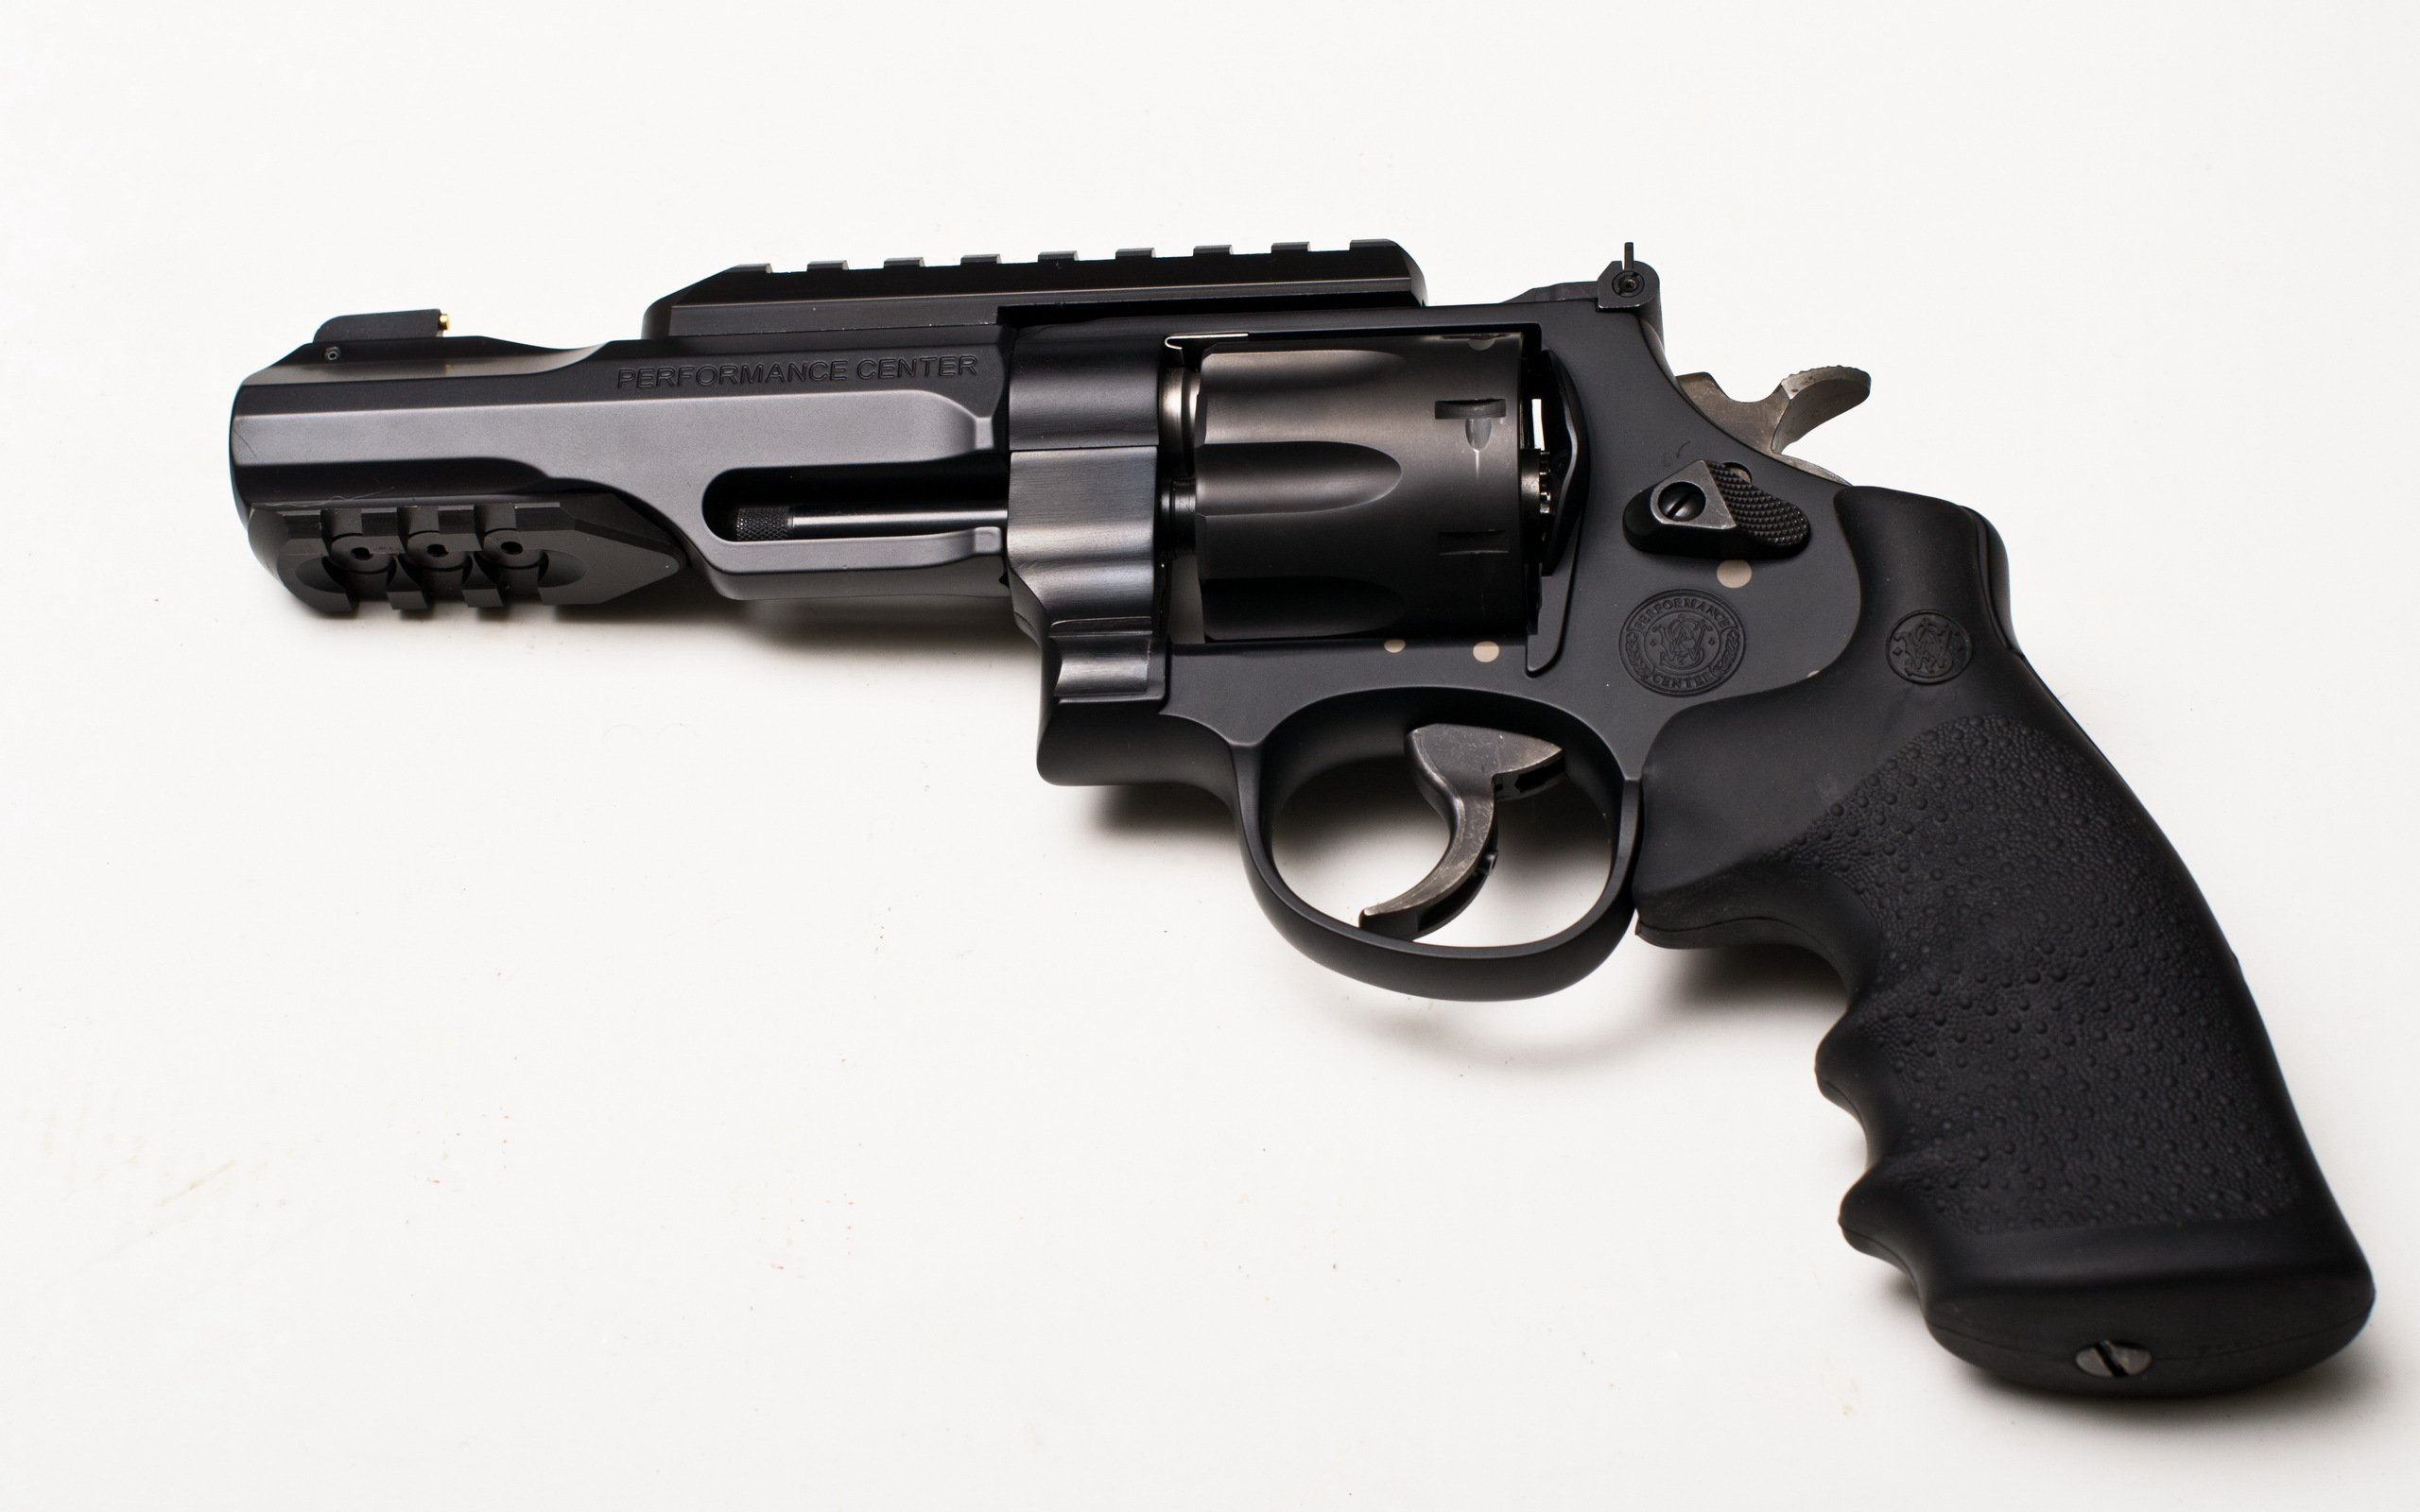 Smith Wesson 327 TRR8 Computer Wallpapers Desktop Backgrounds 2560x1600